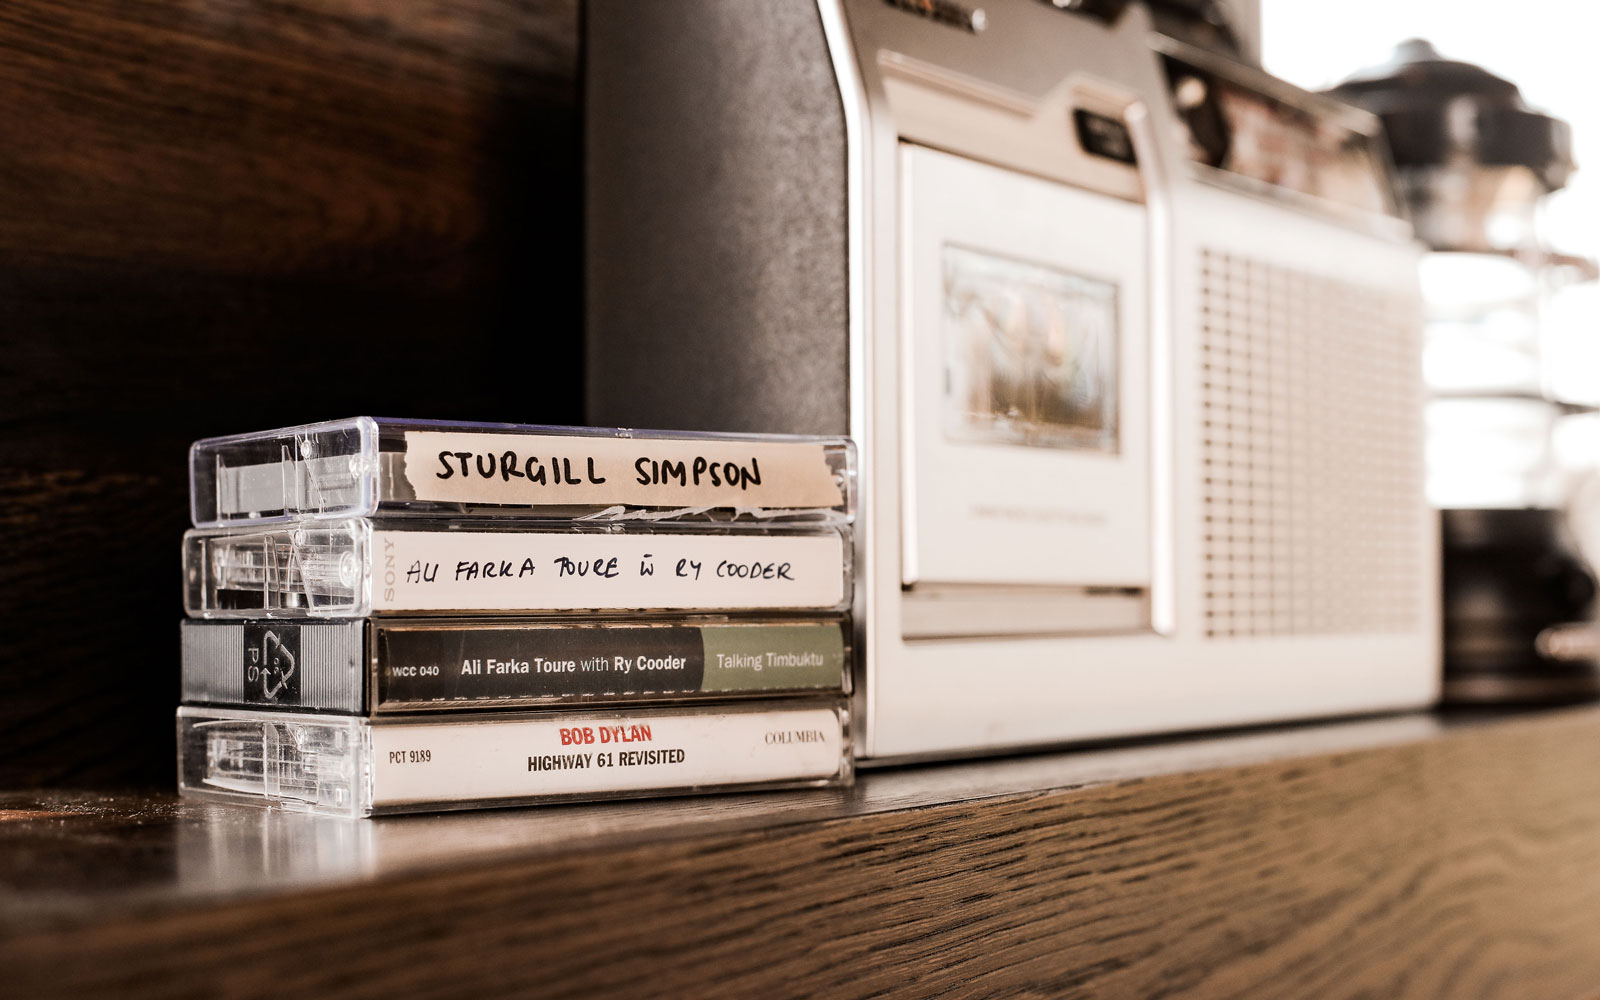 cassette tapes in Matthew McConaughey's cabin